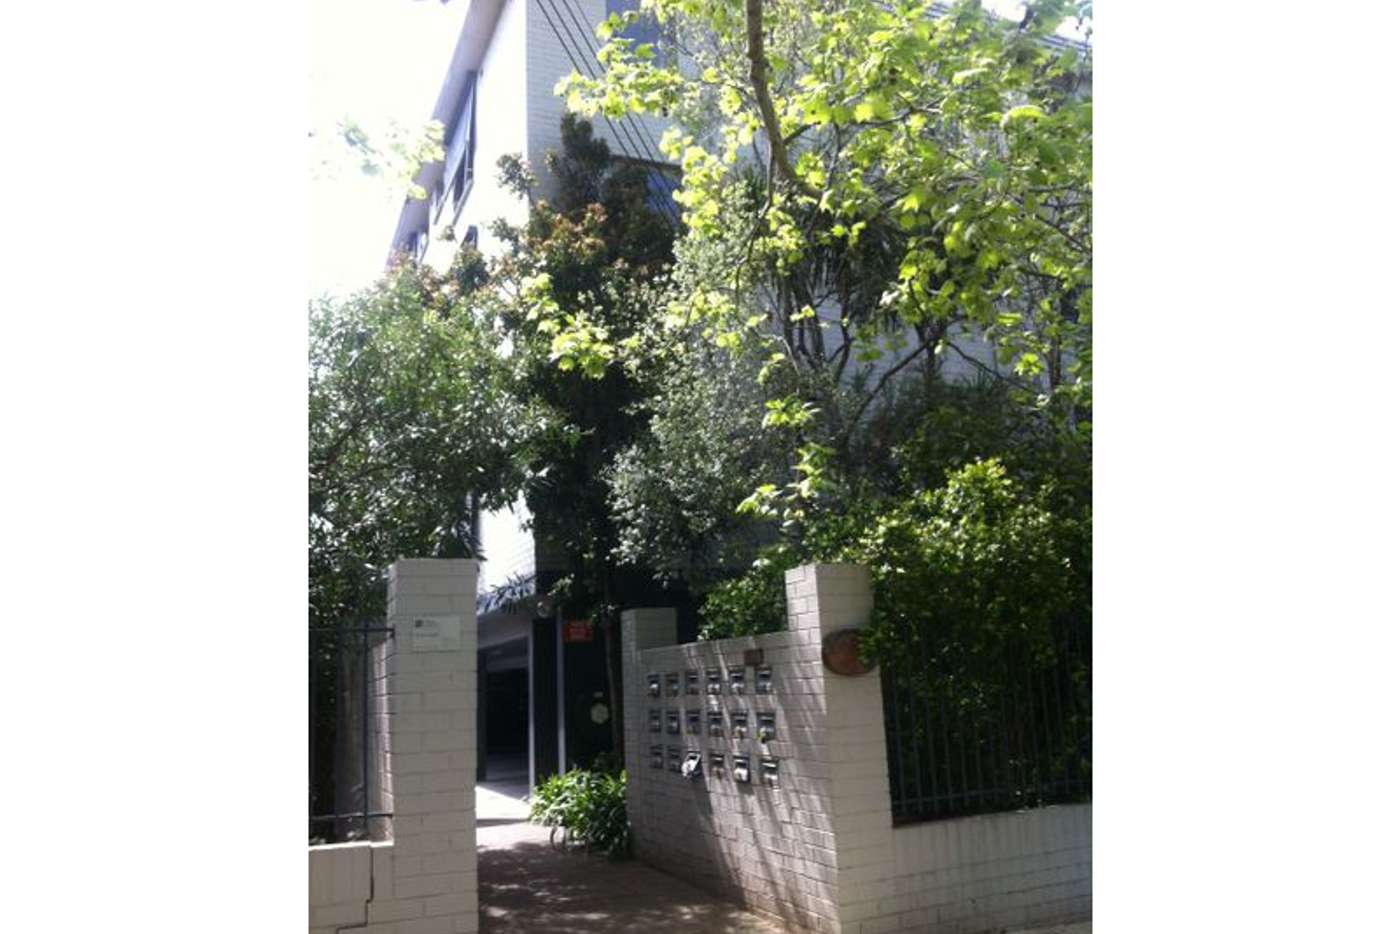 Main view of Homely apartment listing, 10/38 Charnwood Road, St Kilda VIC 3182